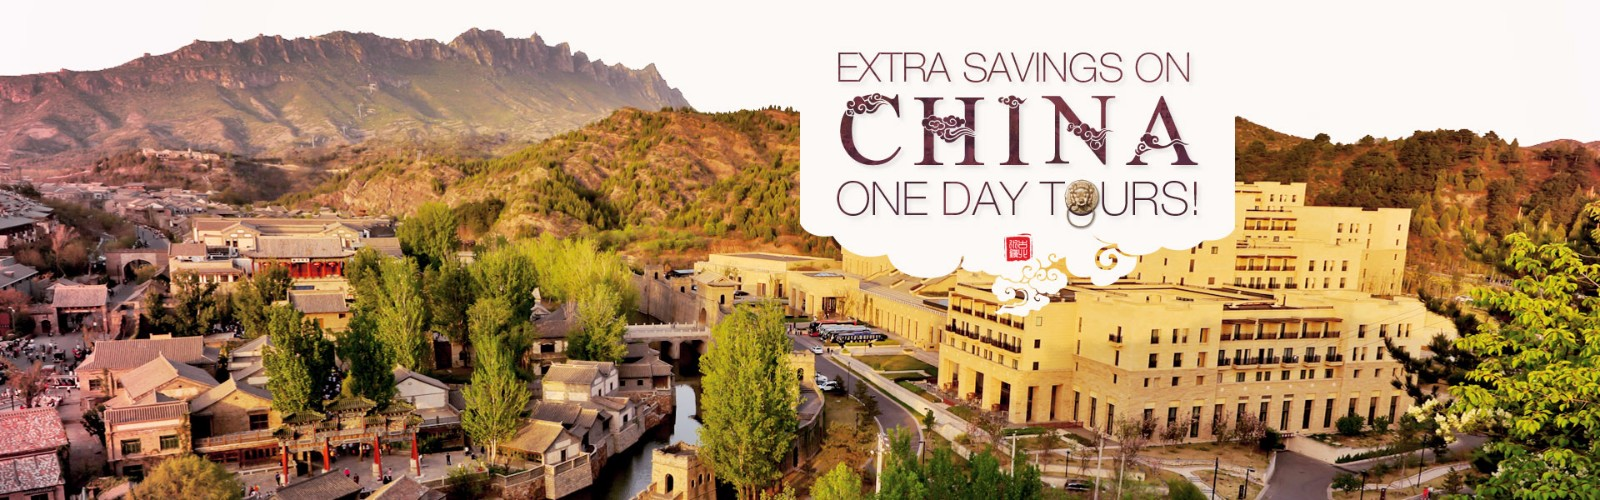 Extra Savings on China One Day Tours!